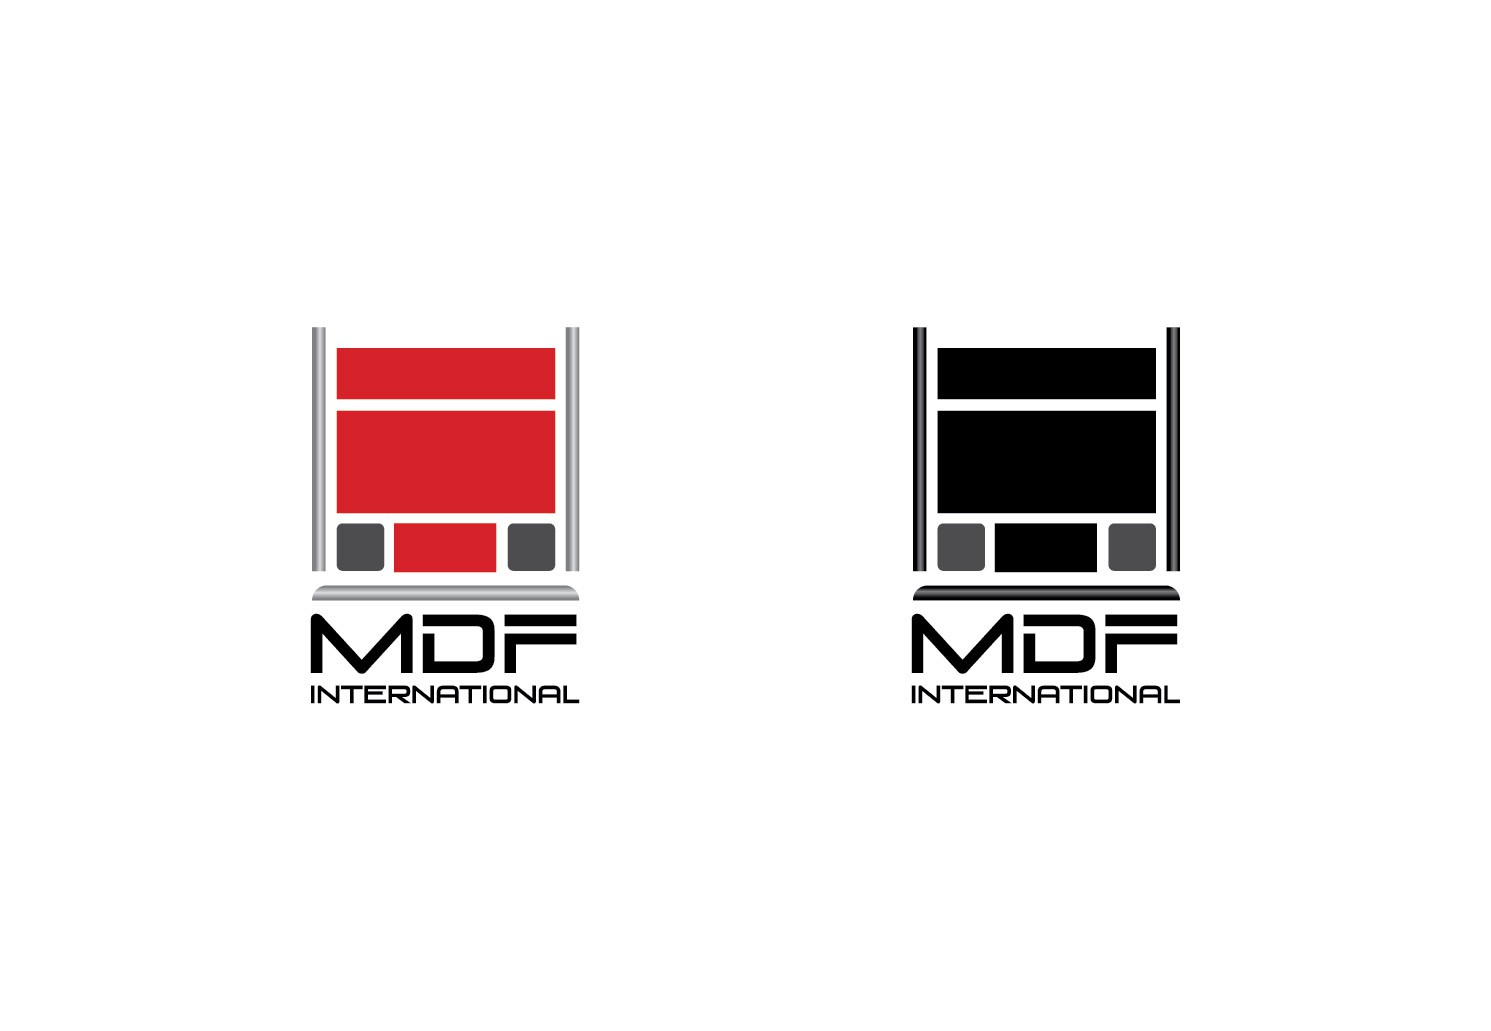 New logo wanted for MDF INTERNATIONAL